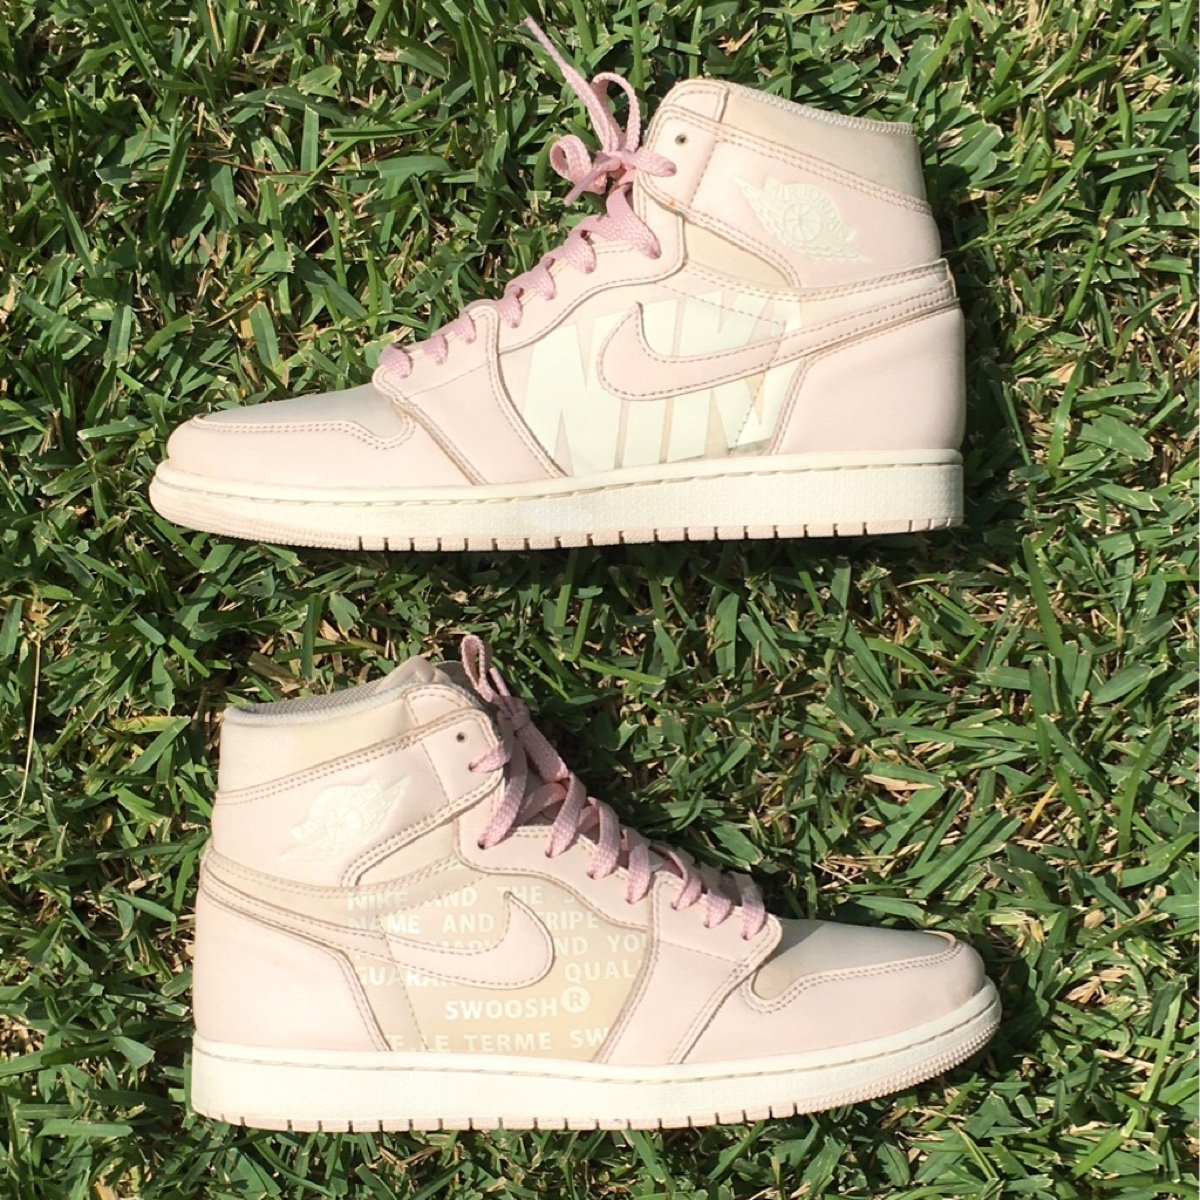 Jordan 1 Retro High Guava Ice